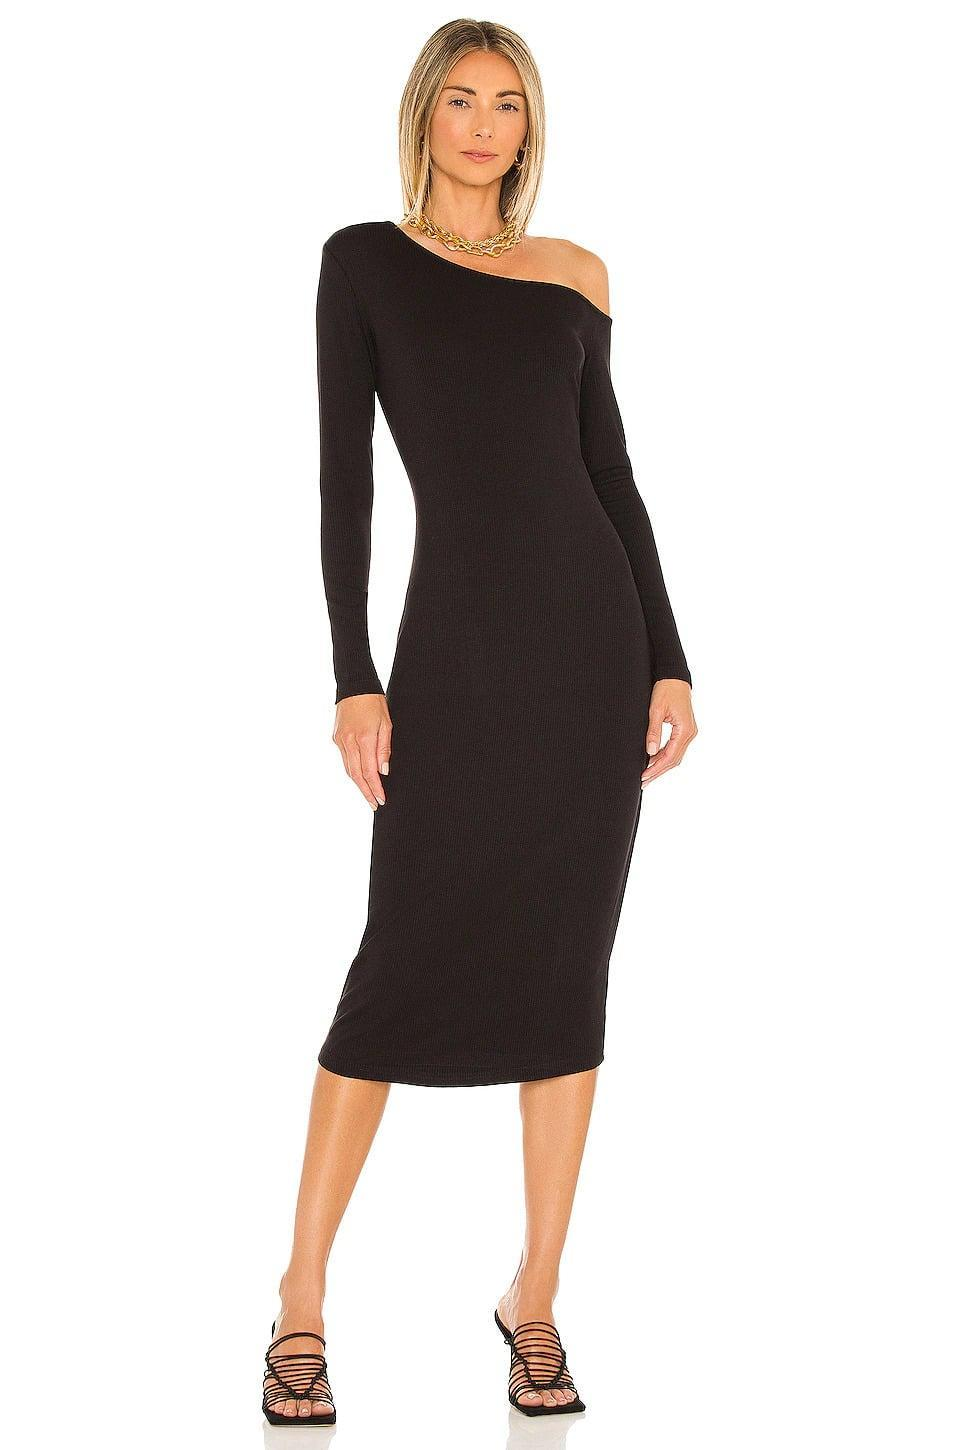 <p>The <span>Heartloom Larisa Dress in Black</span> ($99) does the off-shoulder trend right. It's such a sleek and dependable option. If you're in the market for a black dress perfect for the colder months, this is a fabulous find. </p>